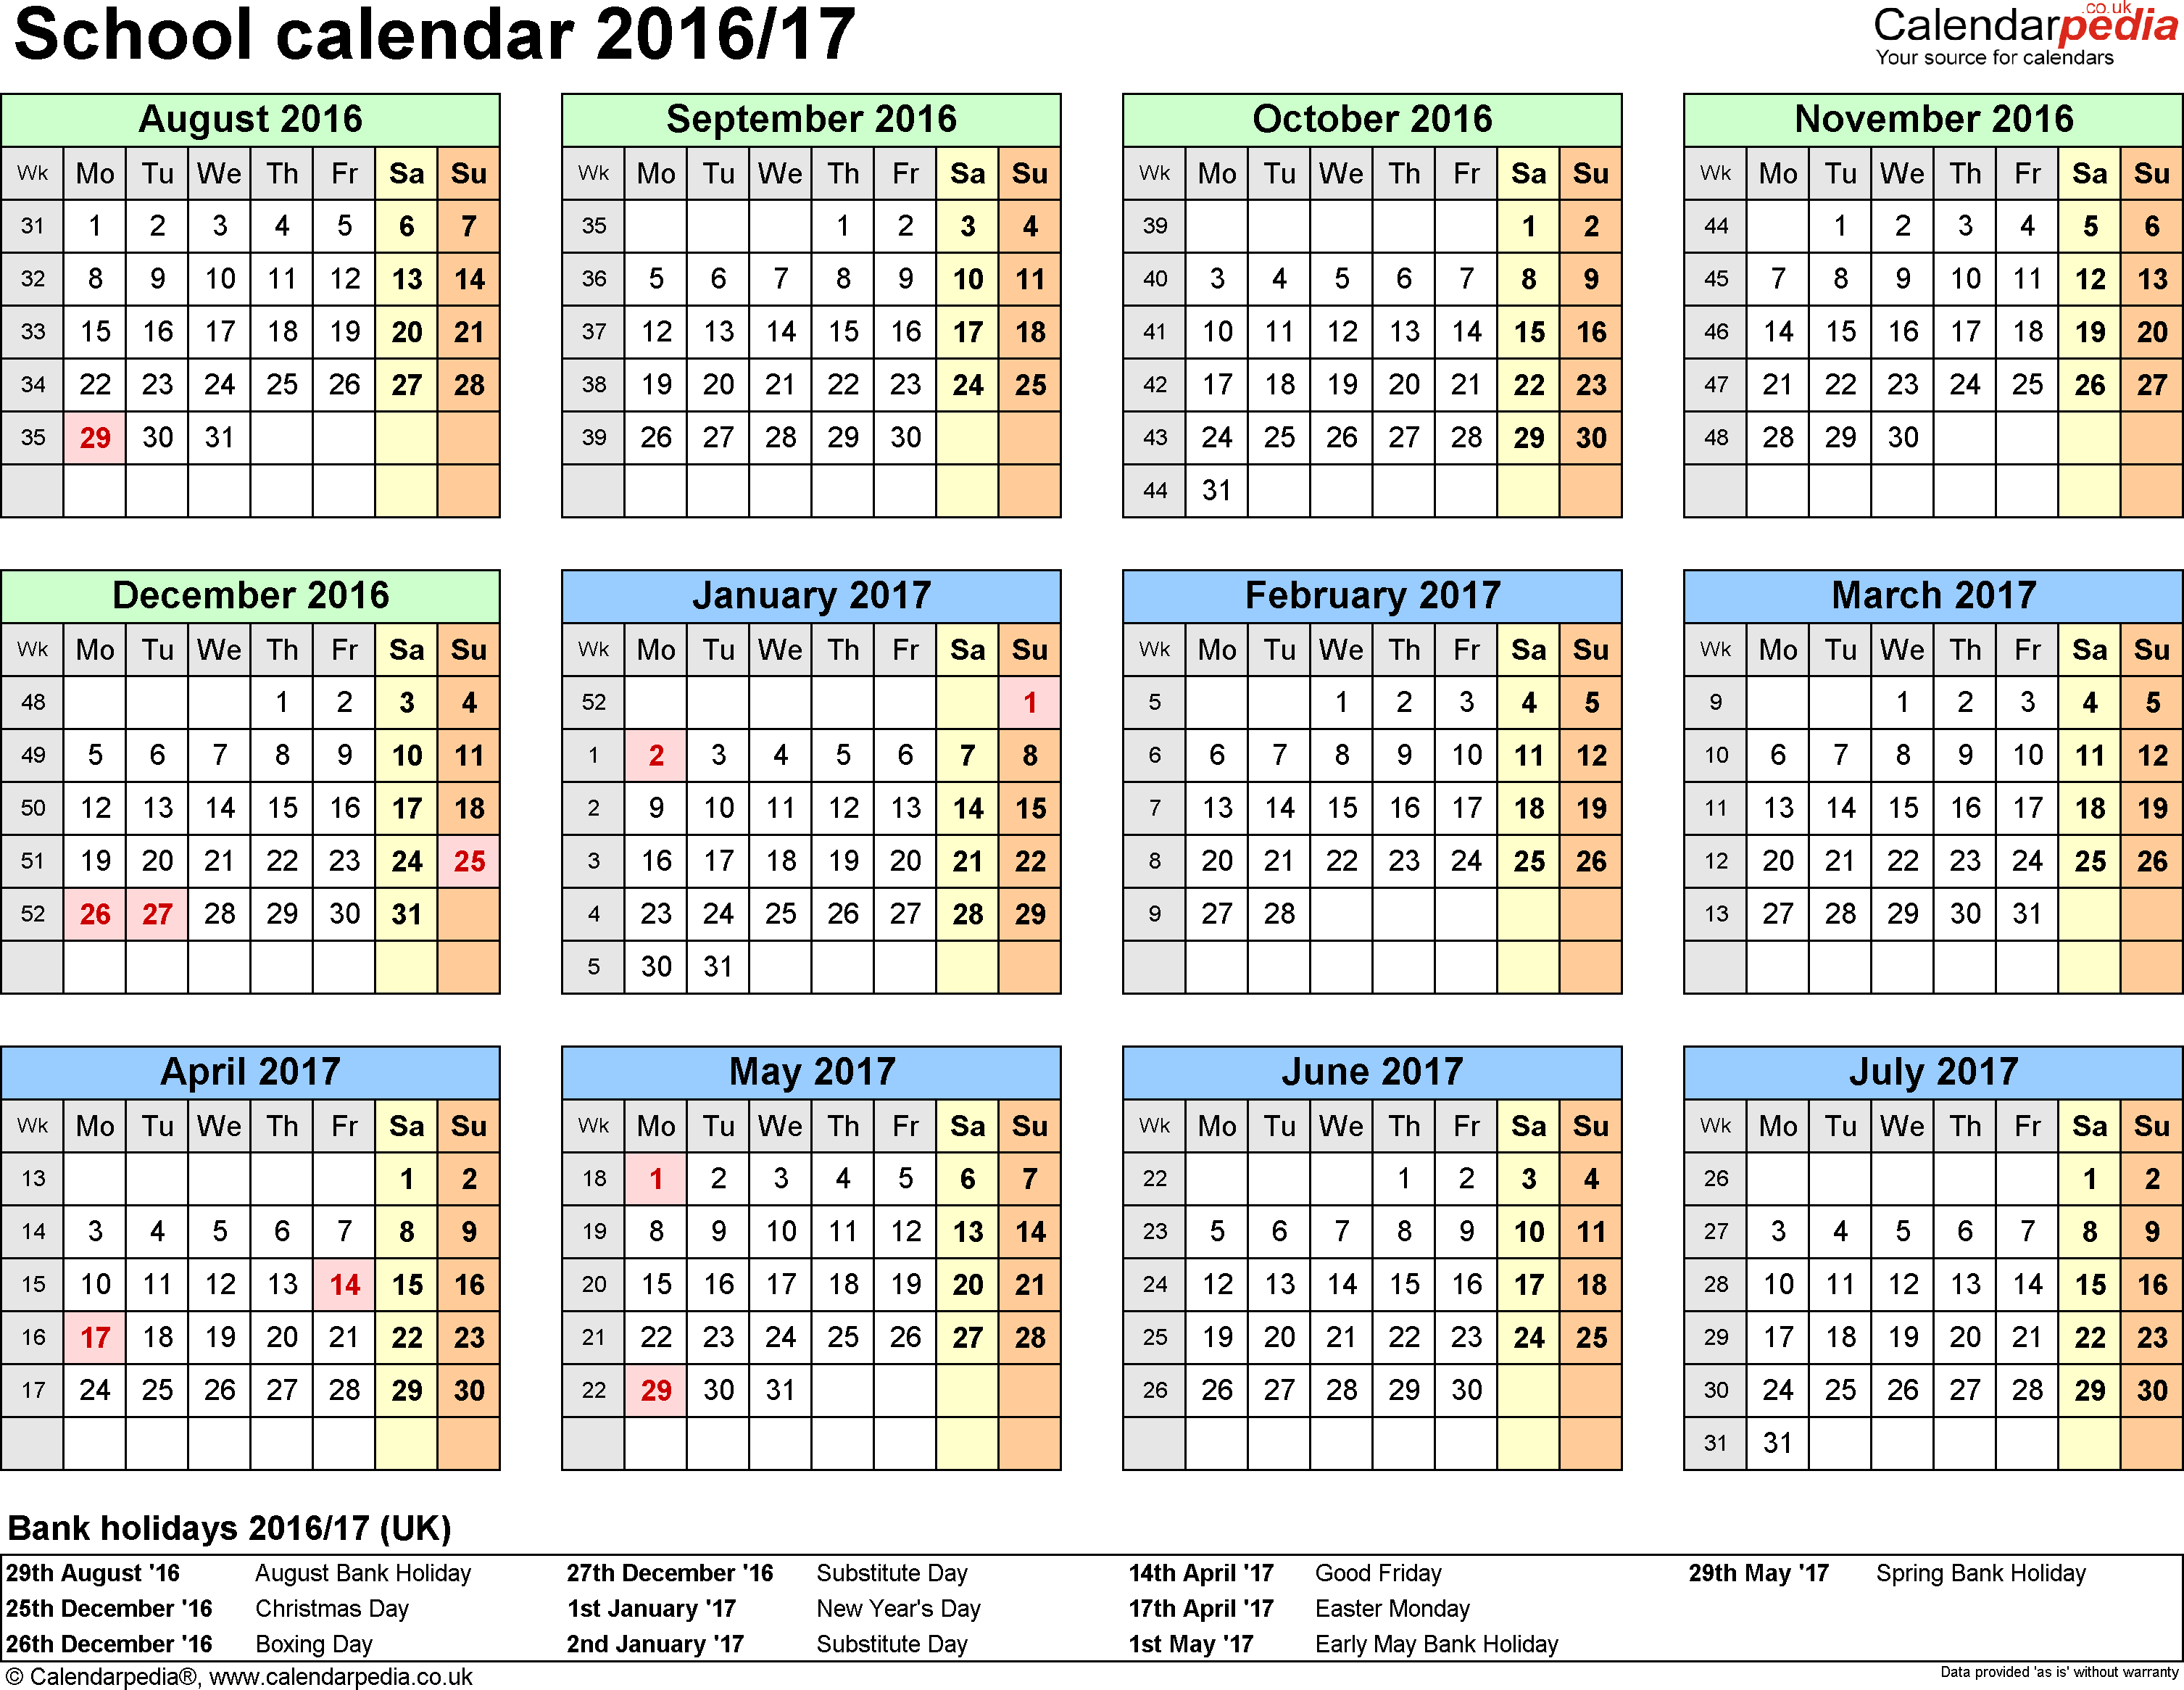 Template 4: School year calendars 2016/17 as PDF template, year at a glance, 1 page